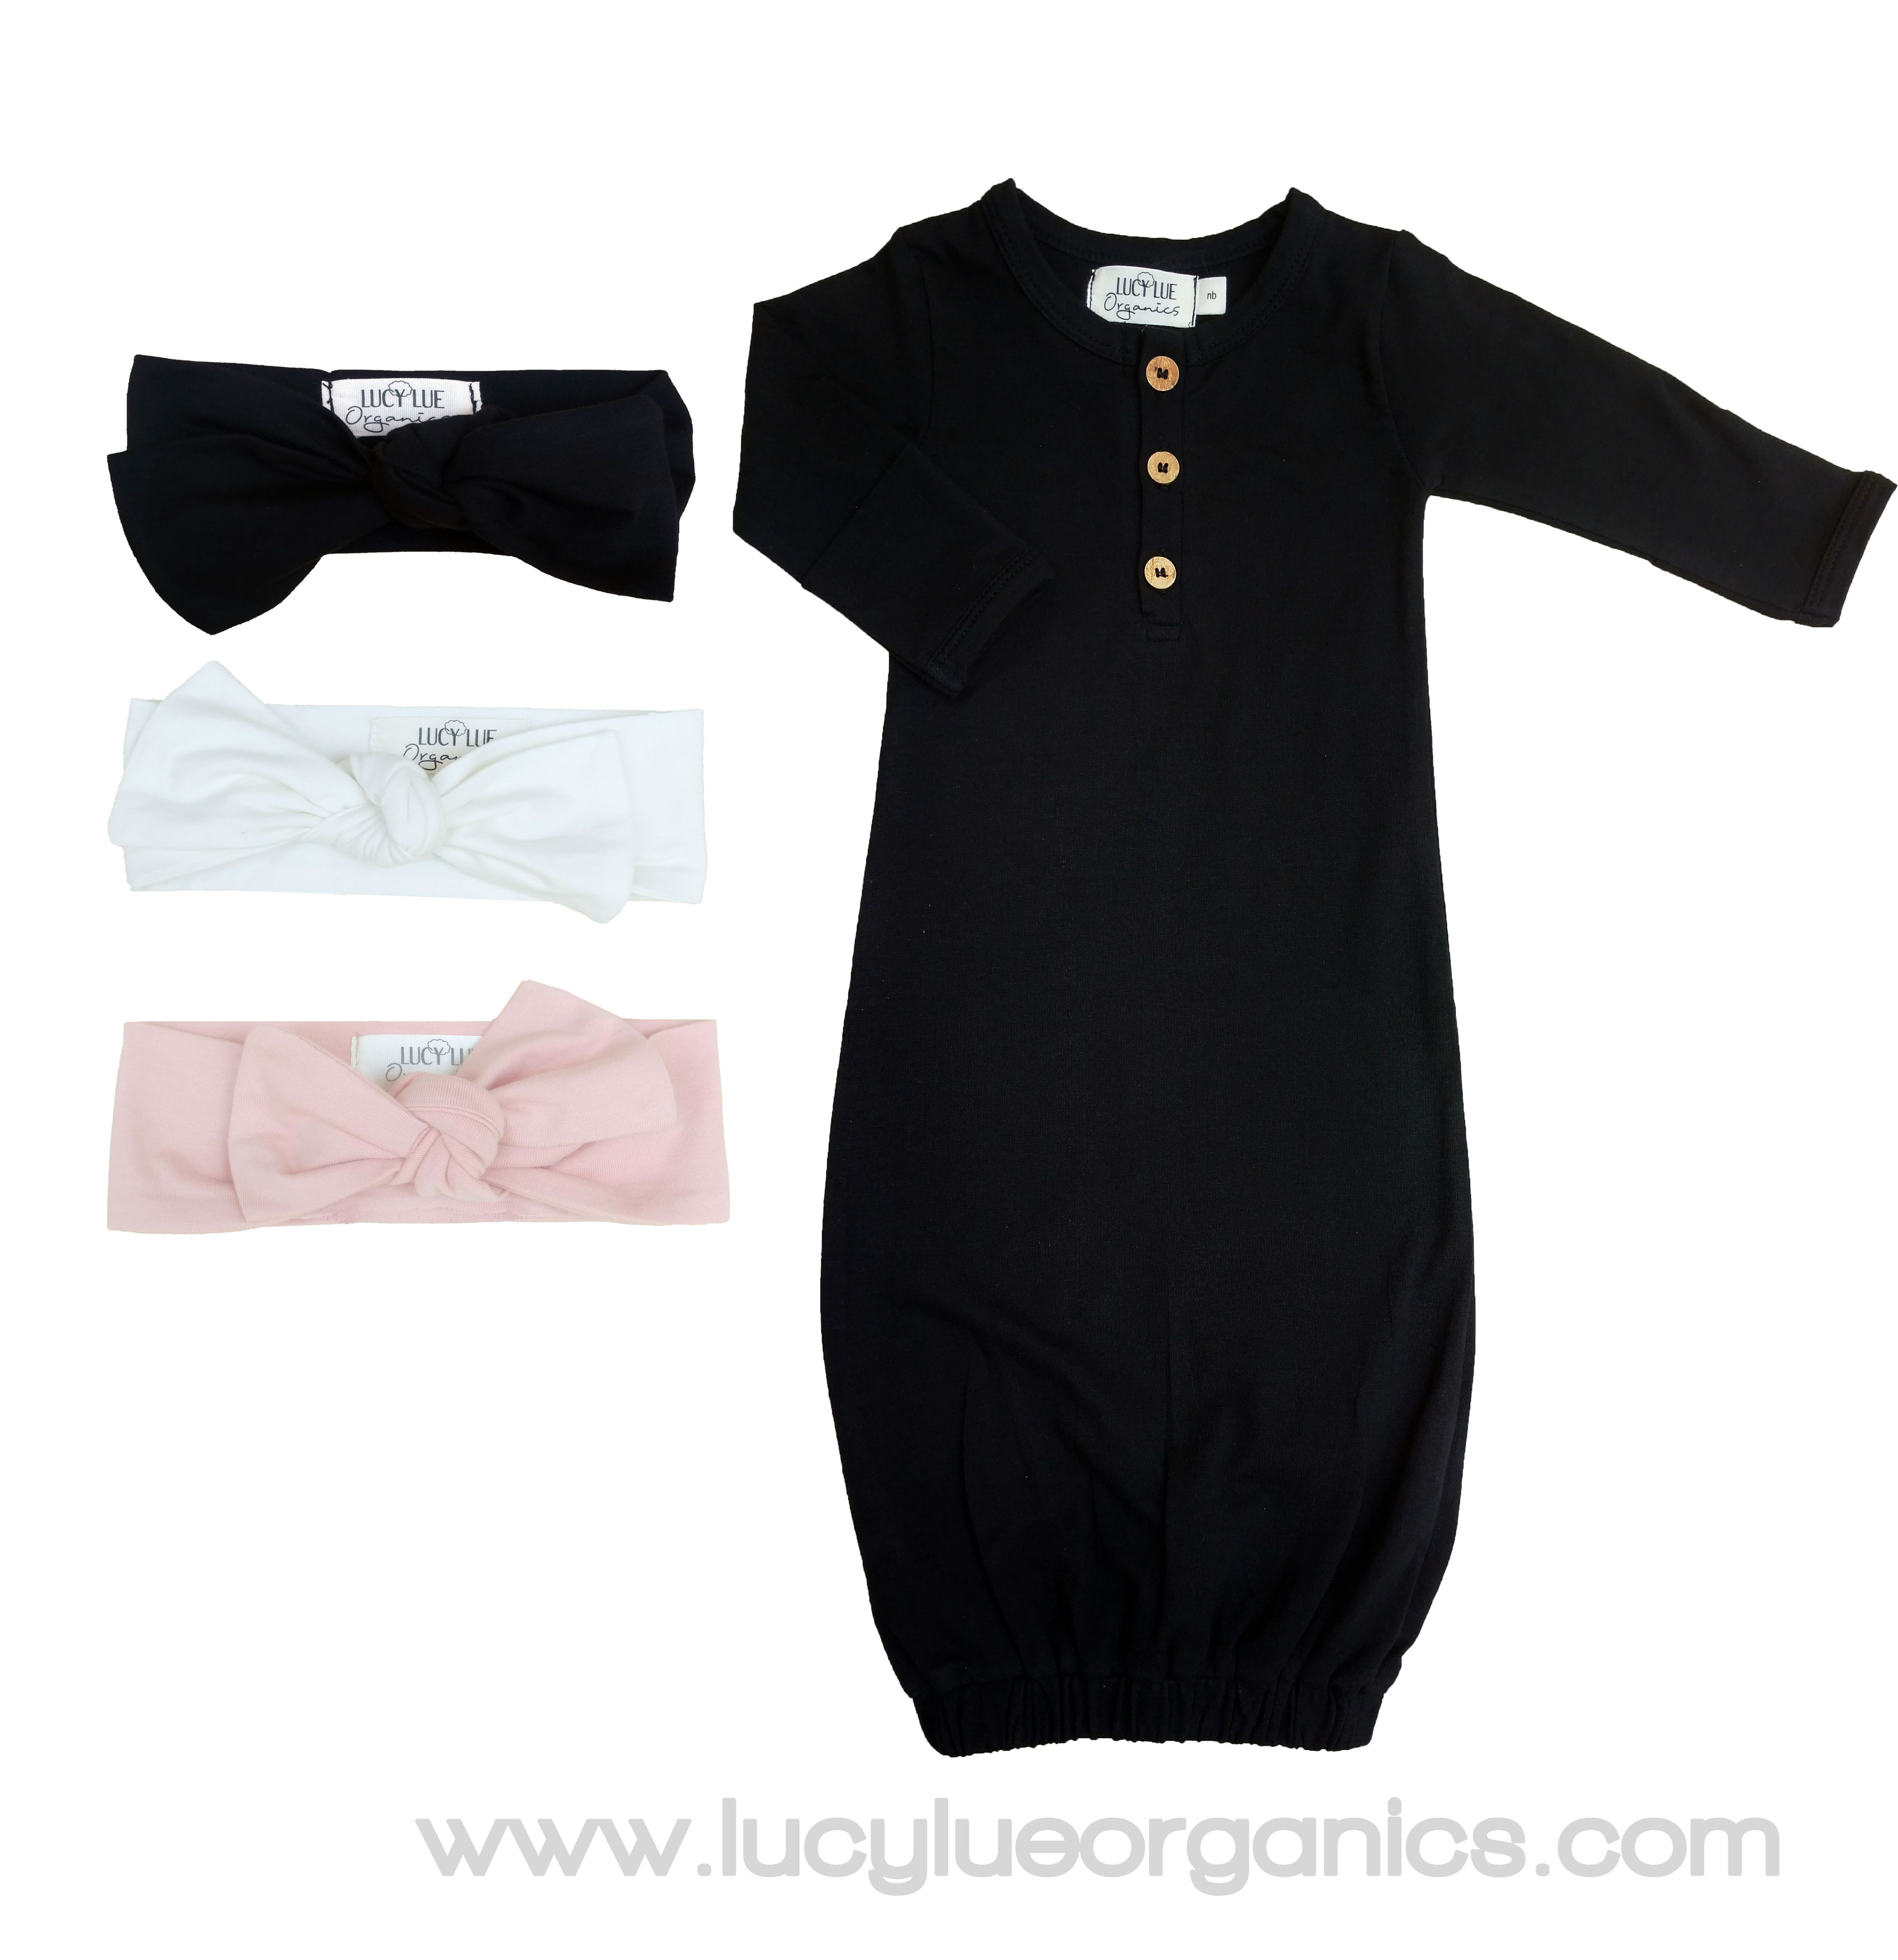 58900d29c BABY GIRL CLOTHING HAUL. ORGANIC COTTON STYLES BY LUCY LUE ORGANICS ...